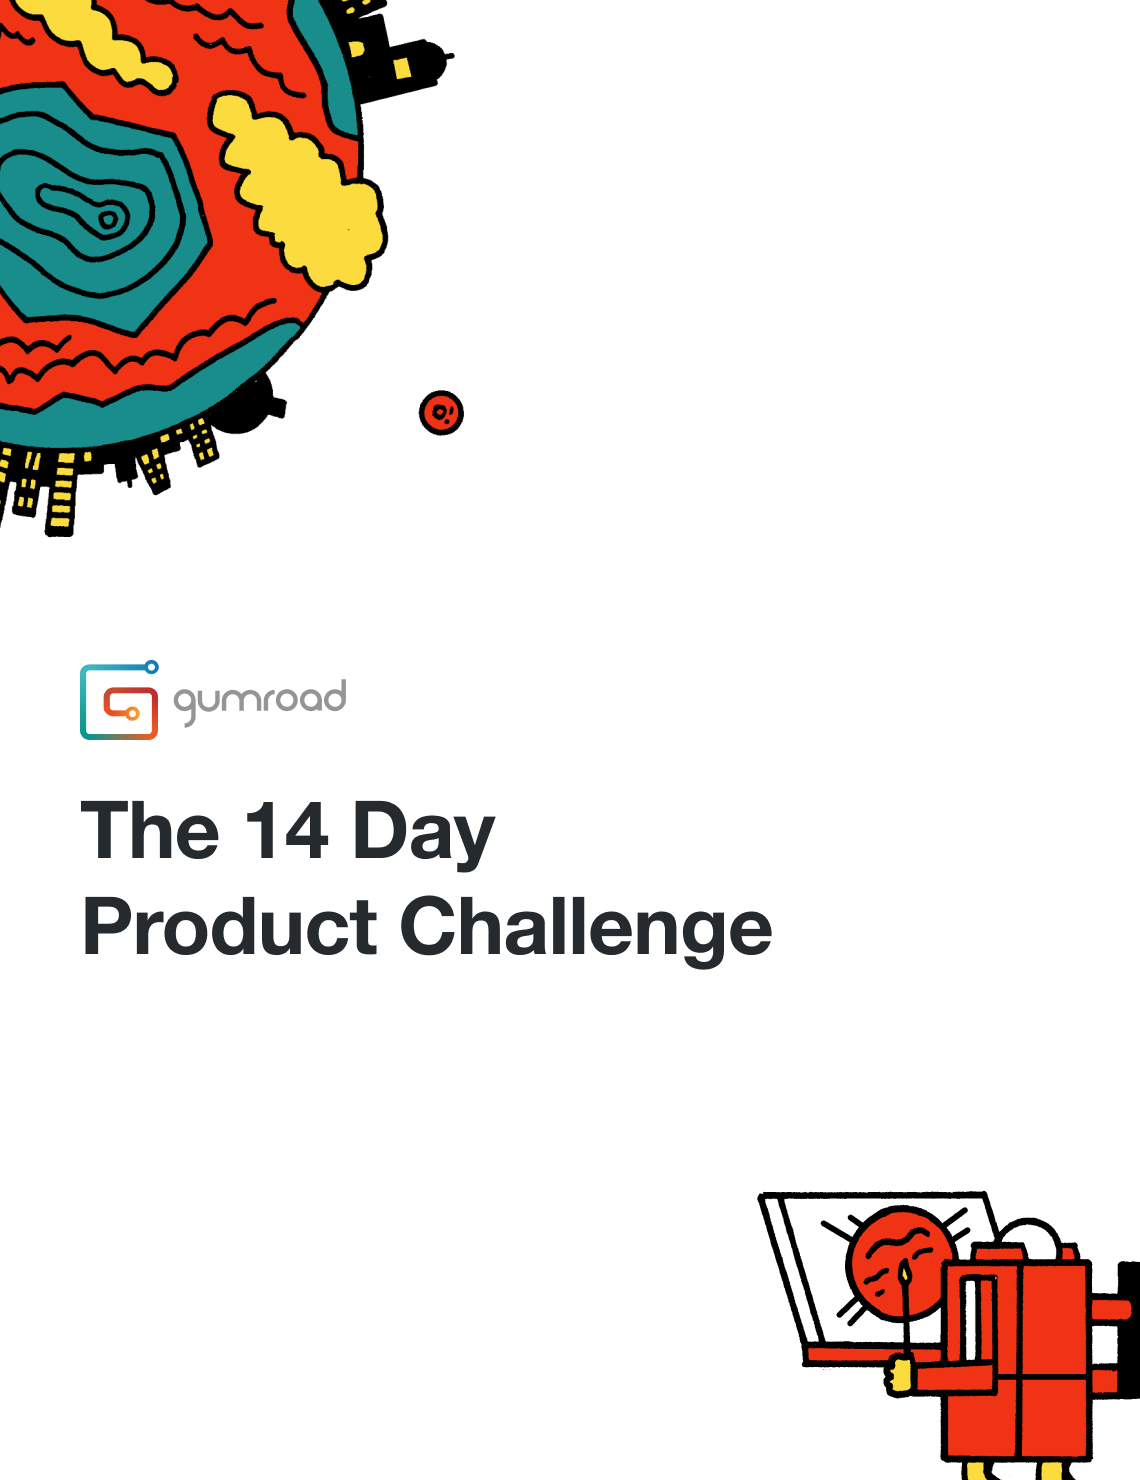 The 14-day product challenge by Gumroad.